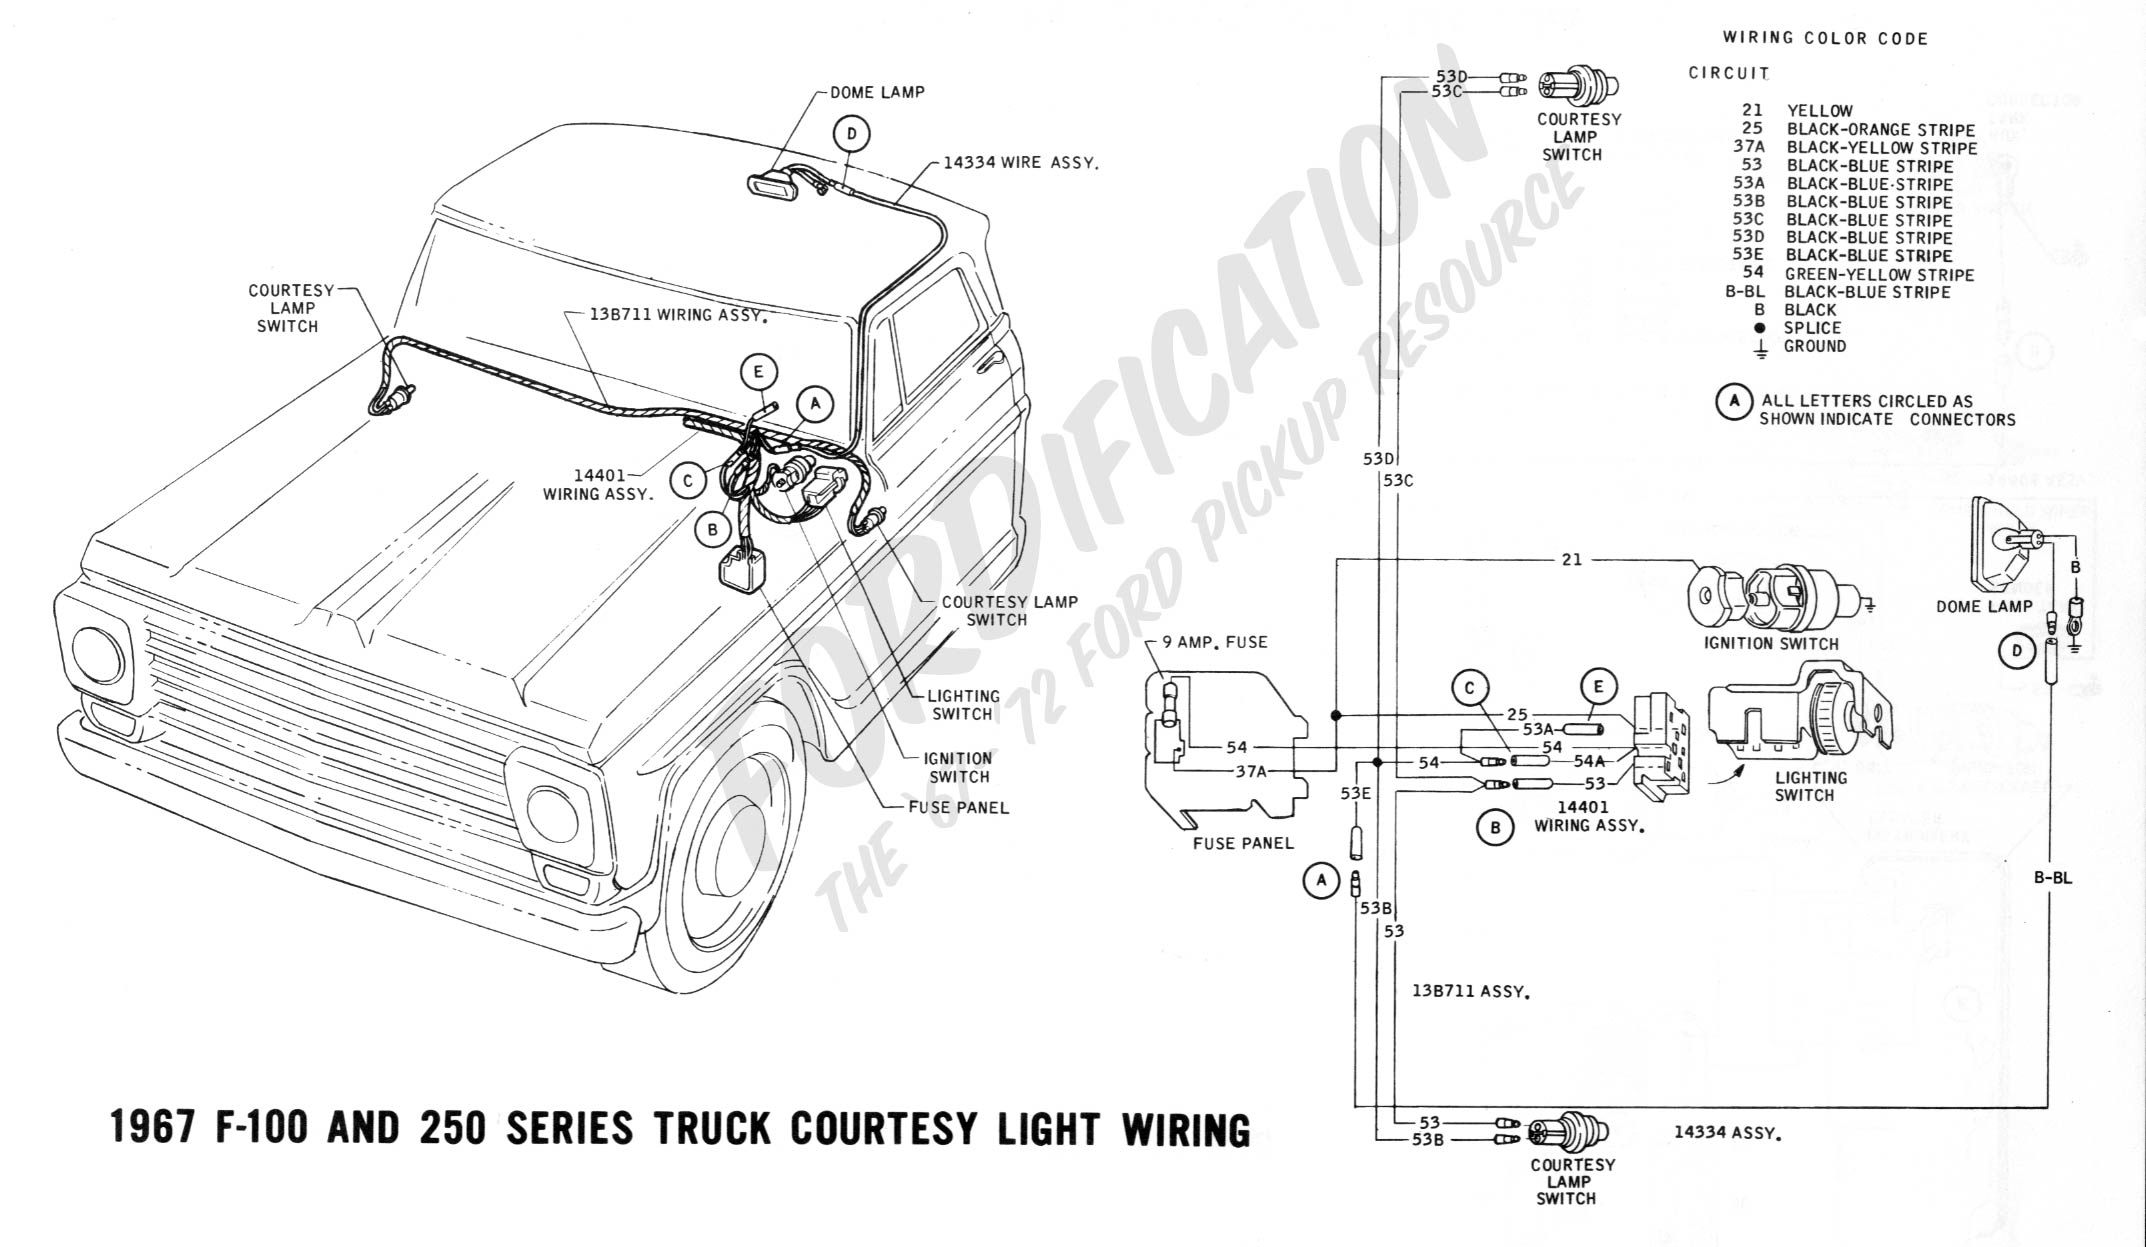 wiring 1967courtesylight ford truck technical drawings and schematics section h wiring 1972 ford truck wiring diagram at gsmx.co